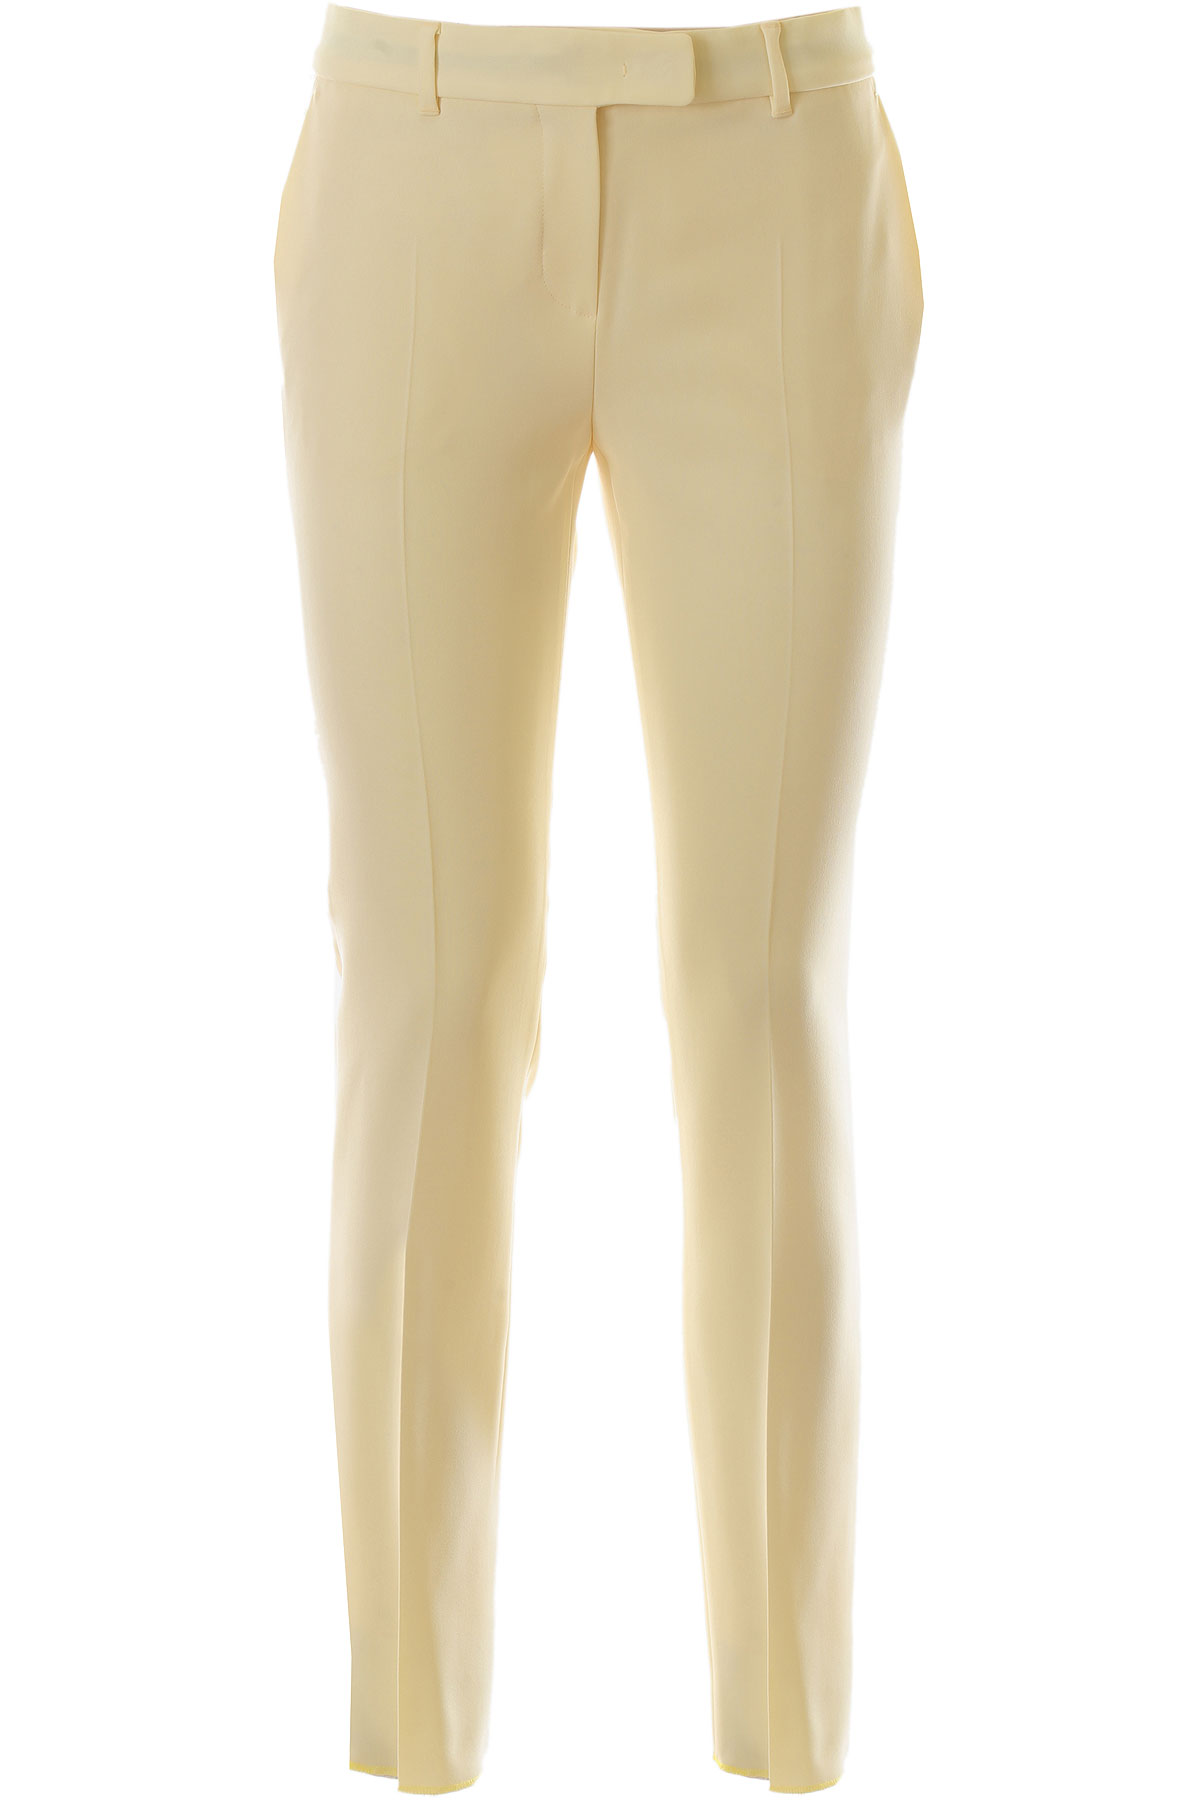 Max Mara Pants for Women On Sale, Light Beige, Triacetate, 2019, 34 4